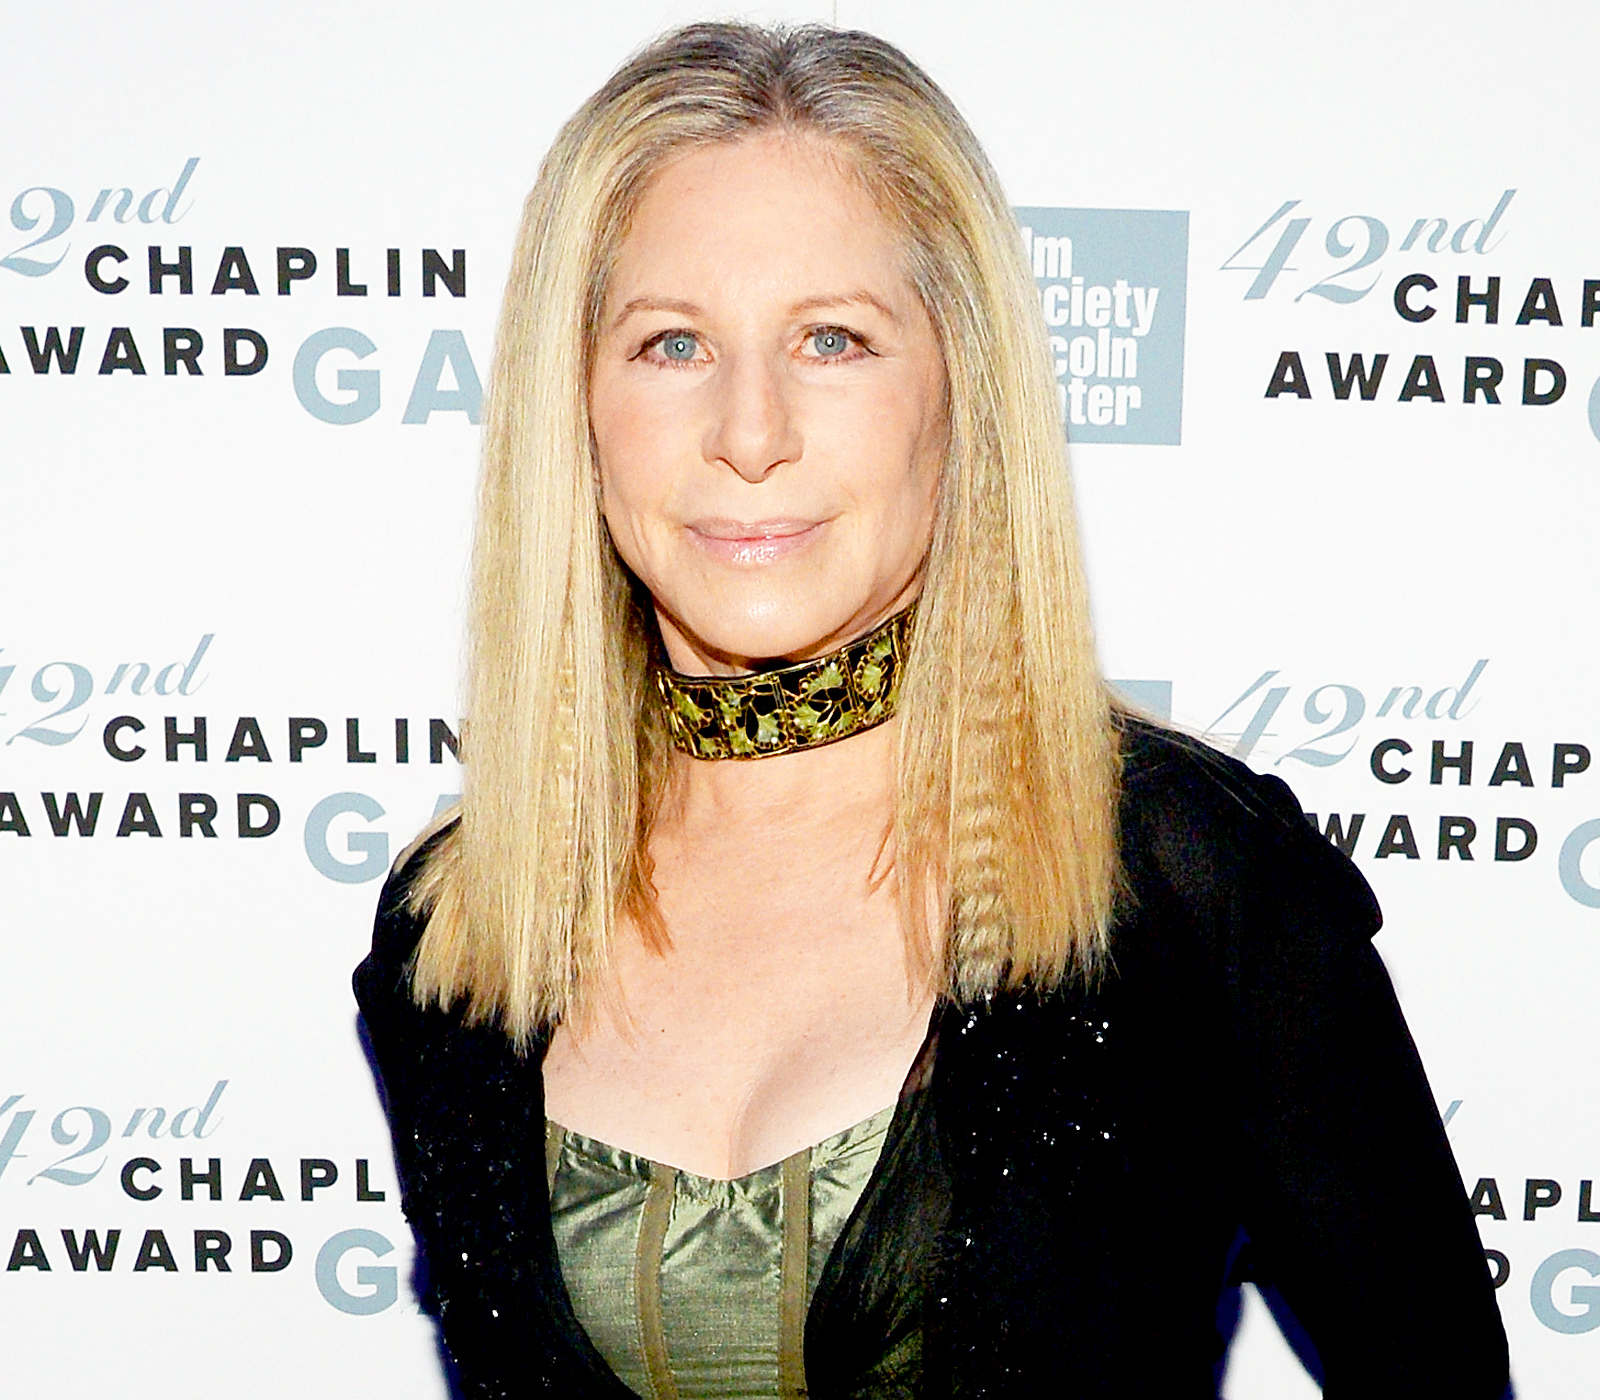 Has Barbra Streisand Never Had A Nose Job